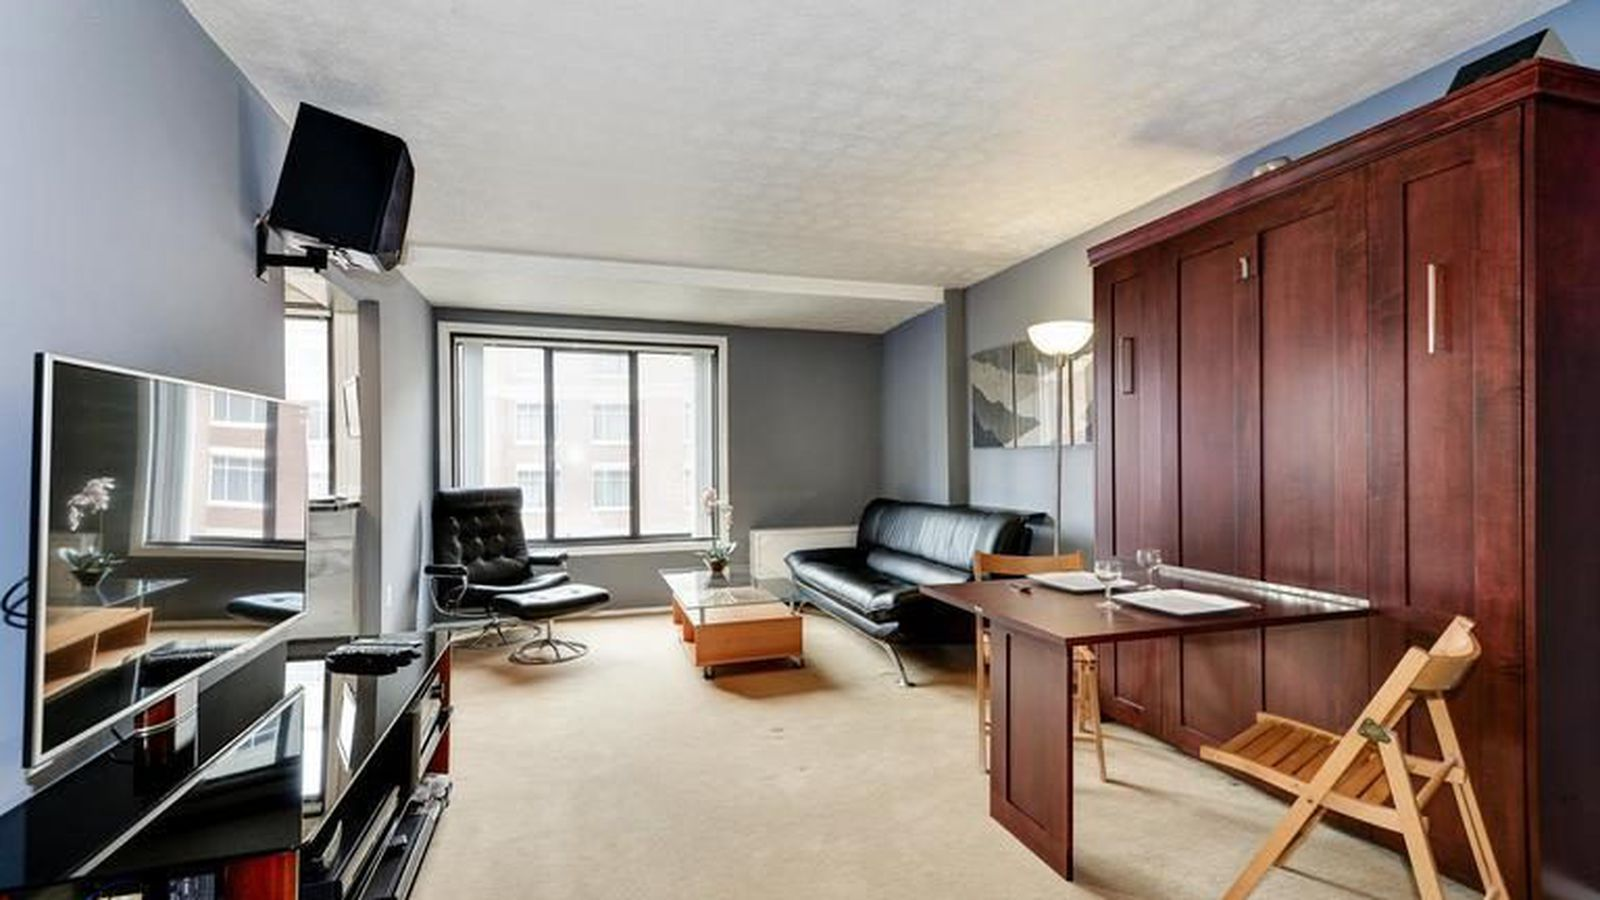 how much for a zero bed 400 sq ft condo in logan circle curbed dc. Black Bedroom Furniture Sets. Home Design Ideas